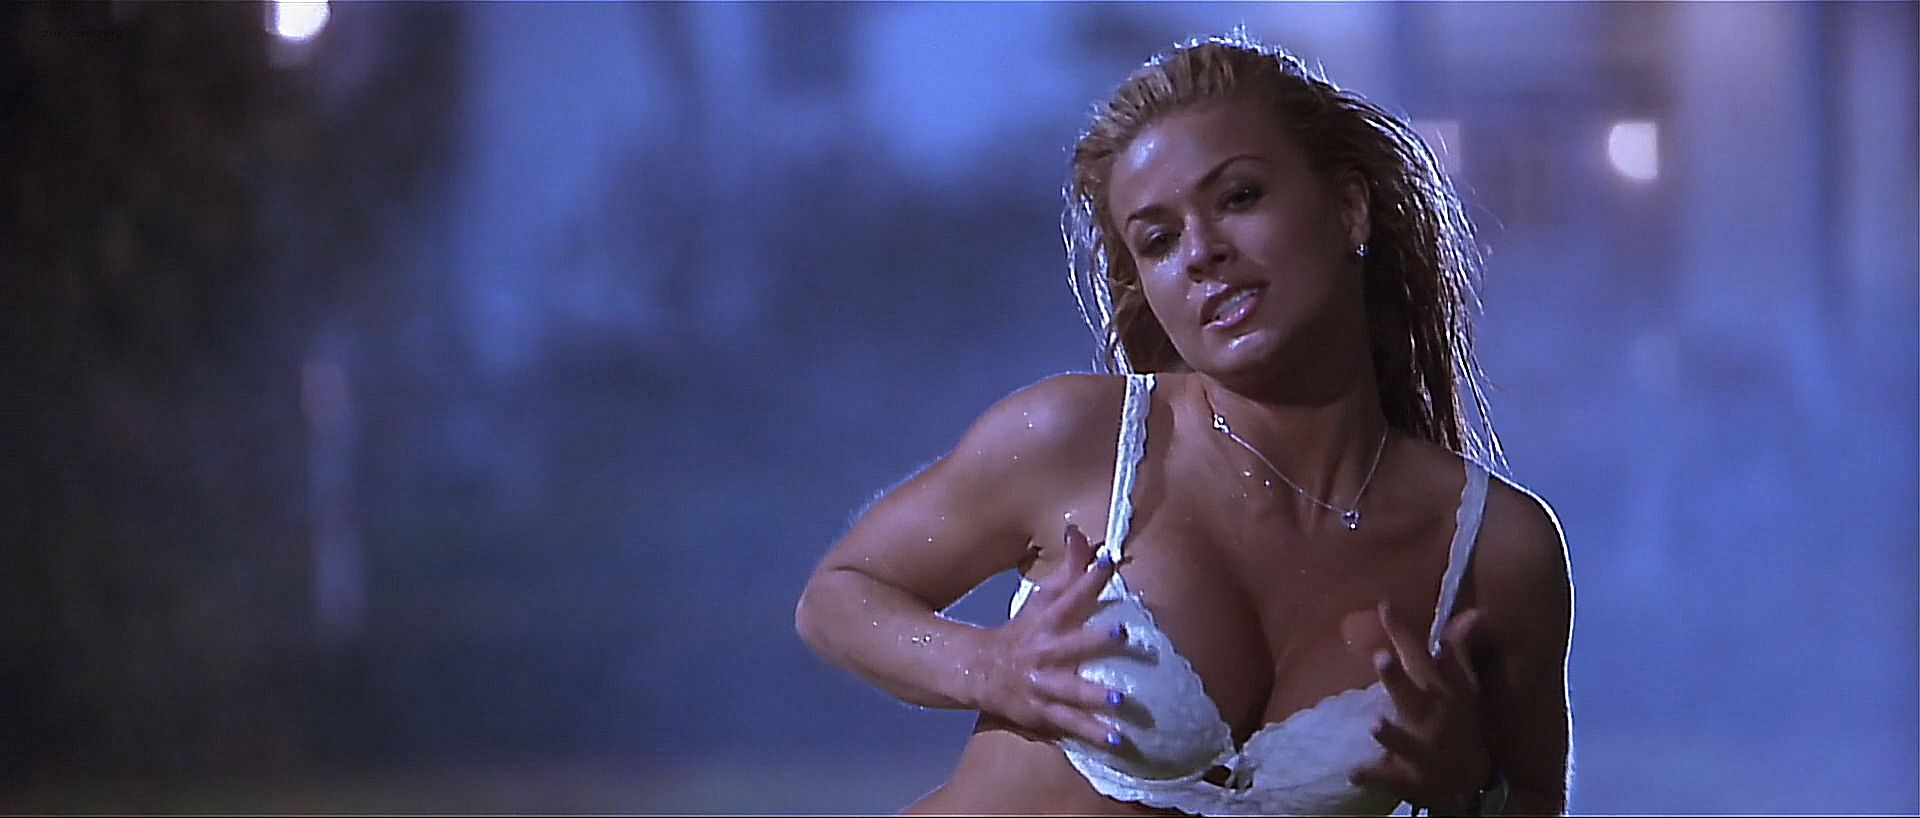 Anna Faris Hot Carmen Electra Hot And Wet And Shannon -8212